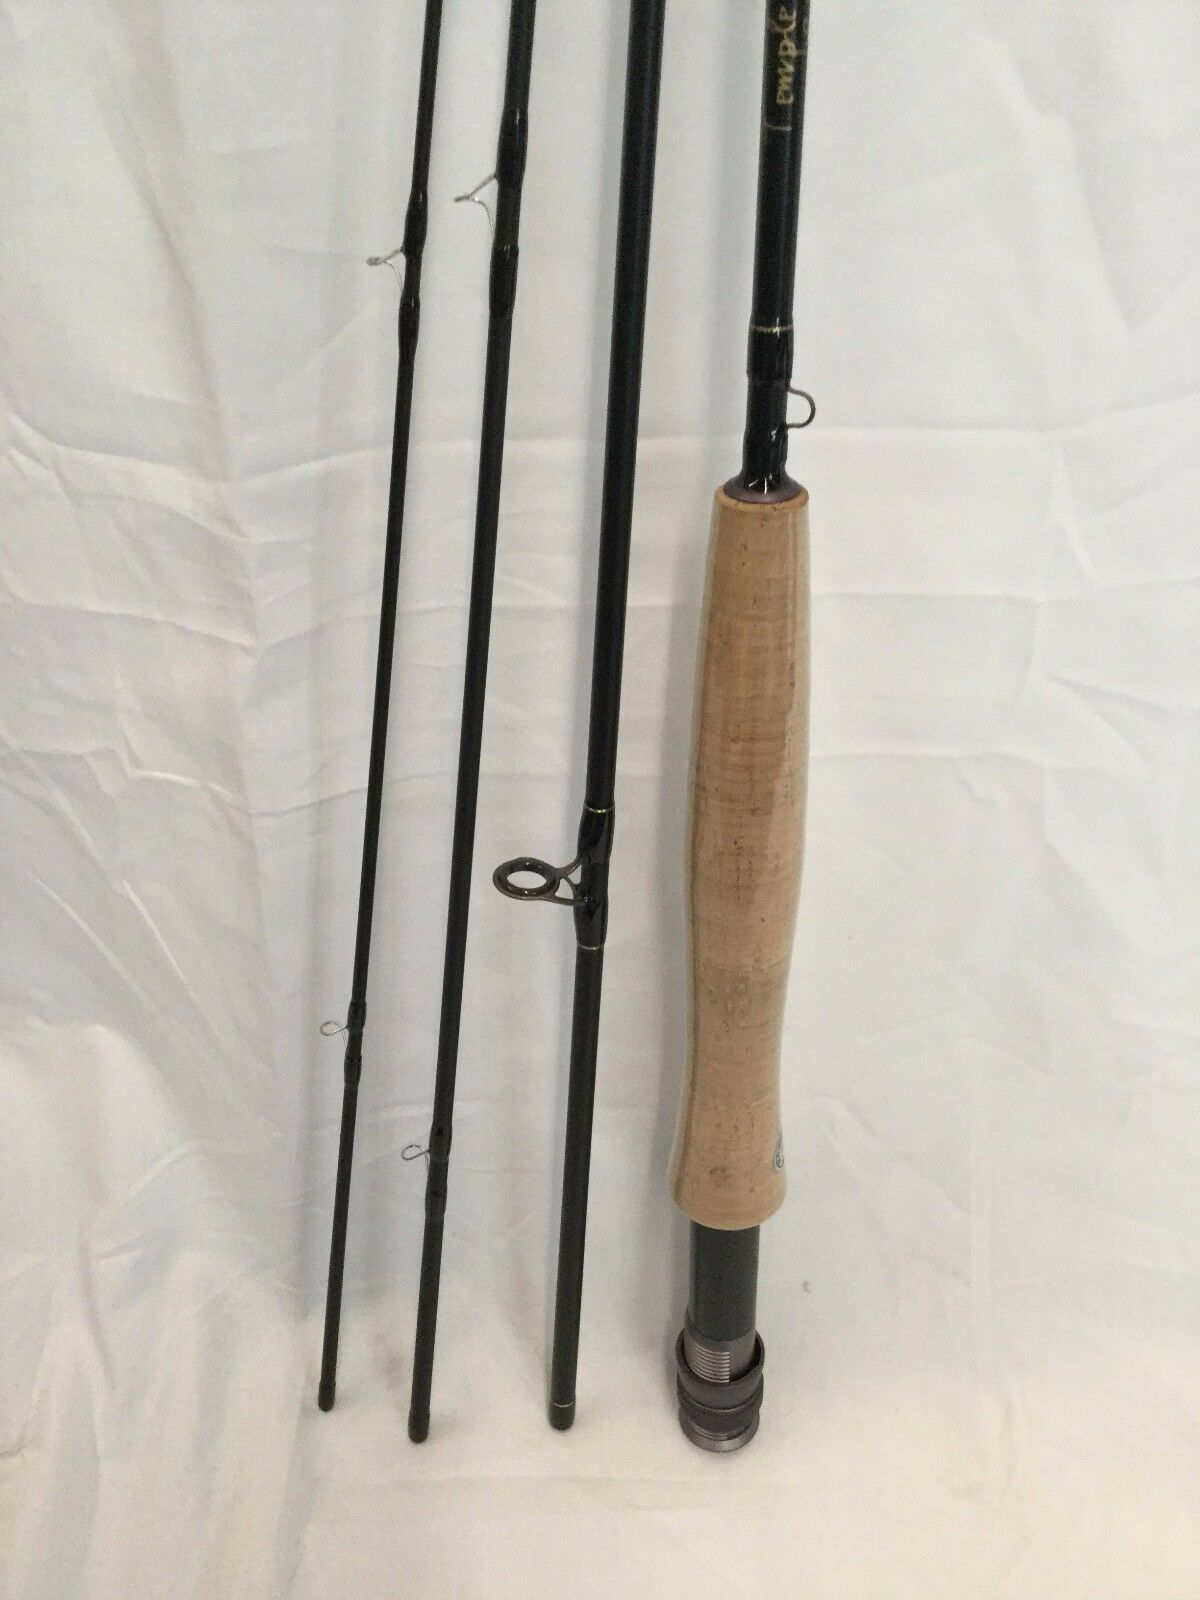 Aernos AX Spinning 78M 2,39m 7-35g SHIMANO Angelrute